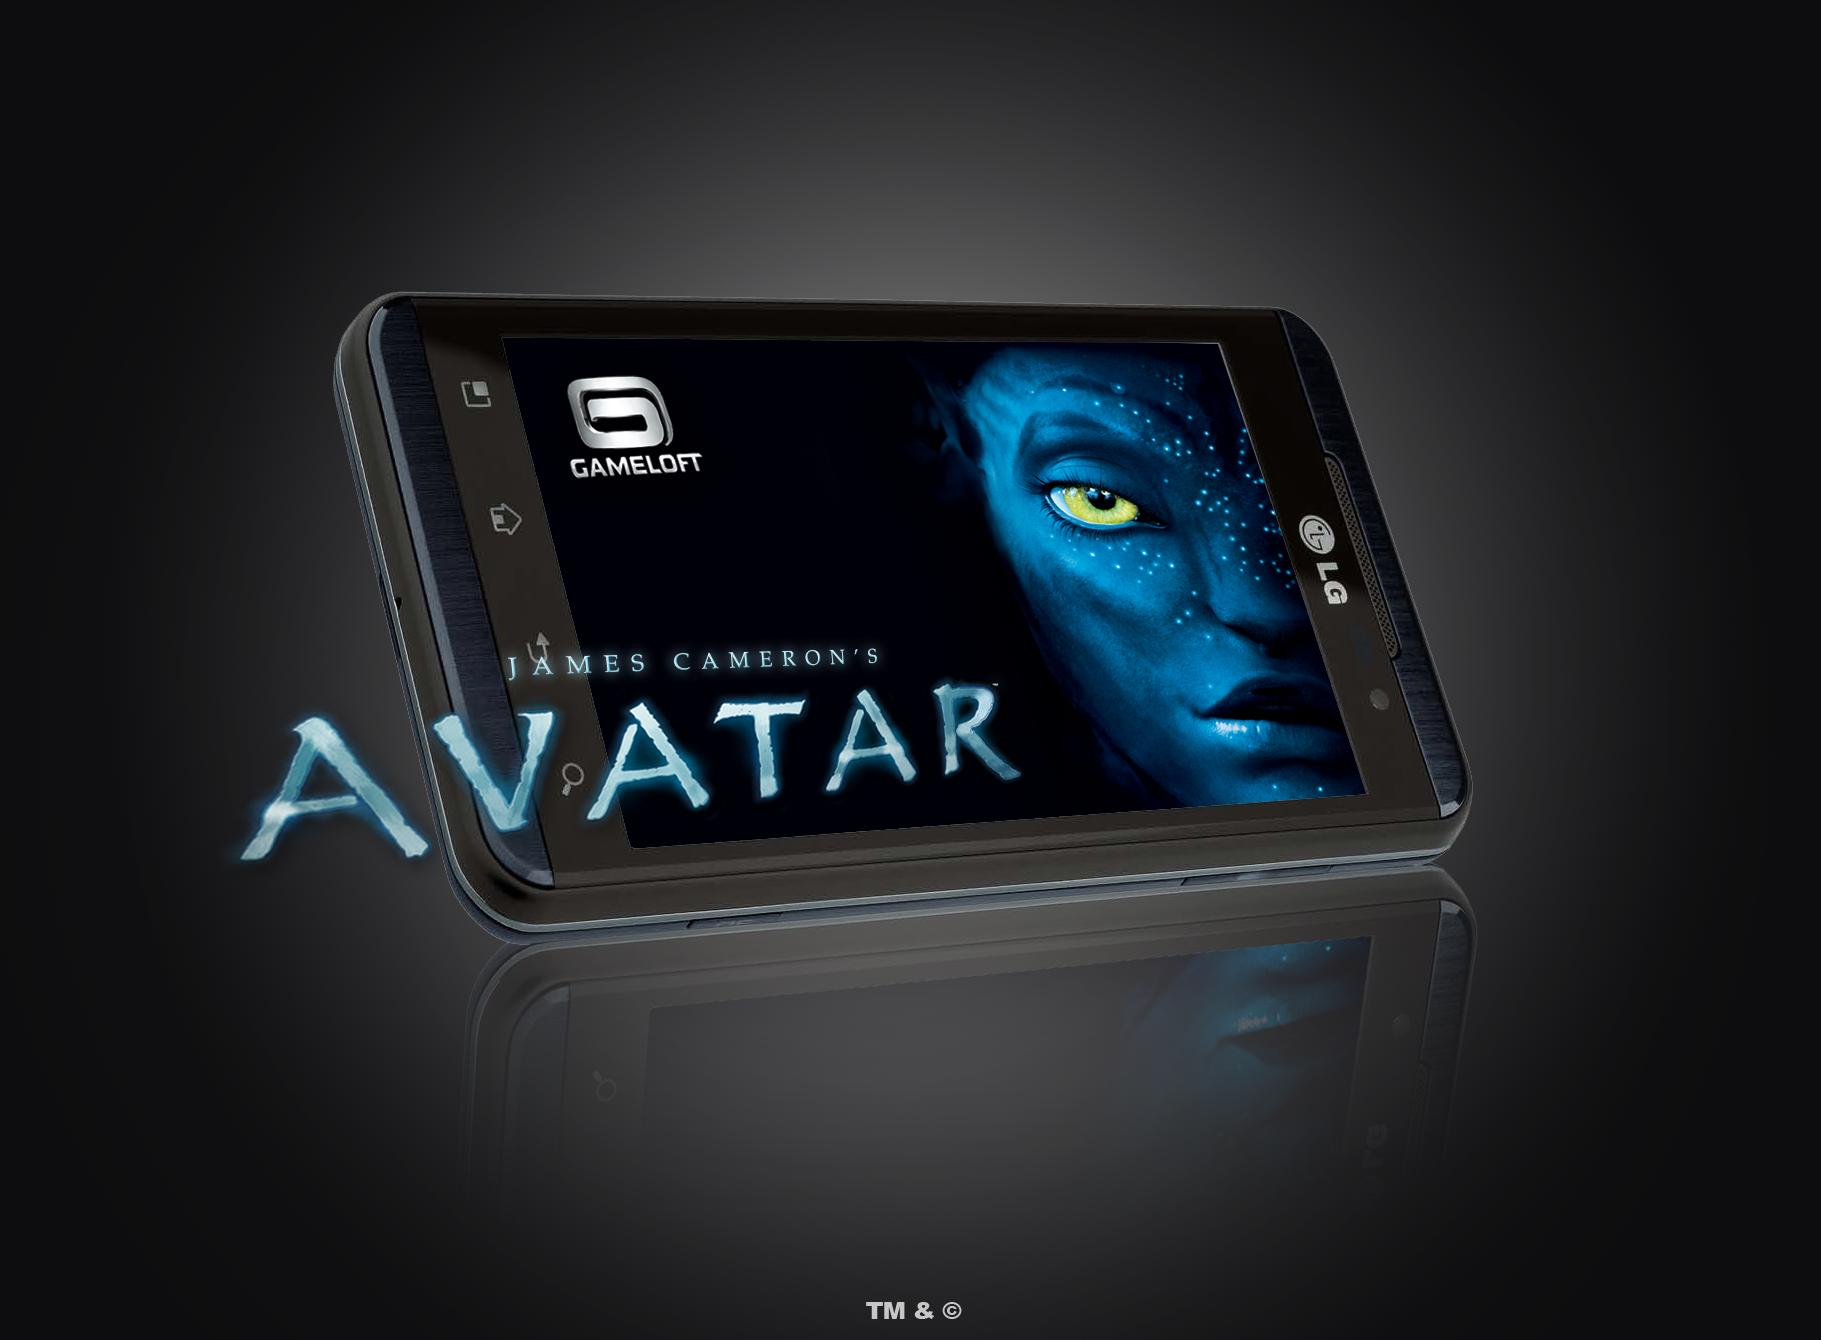 Gameloft's Avatar game image is displayed on LG Optimus 3D